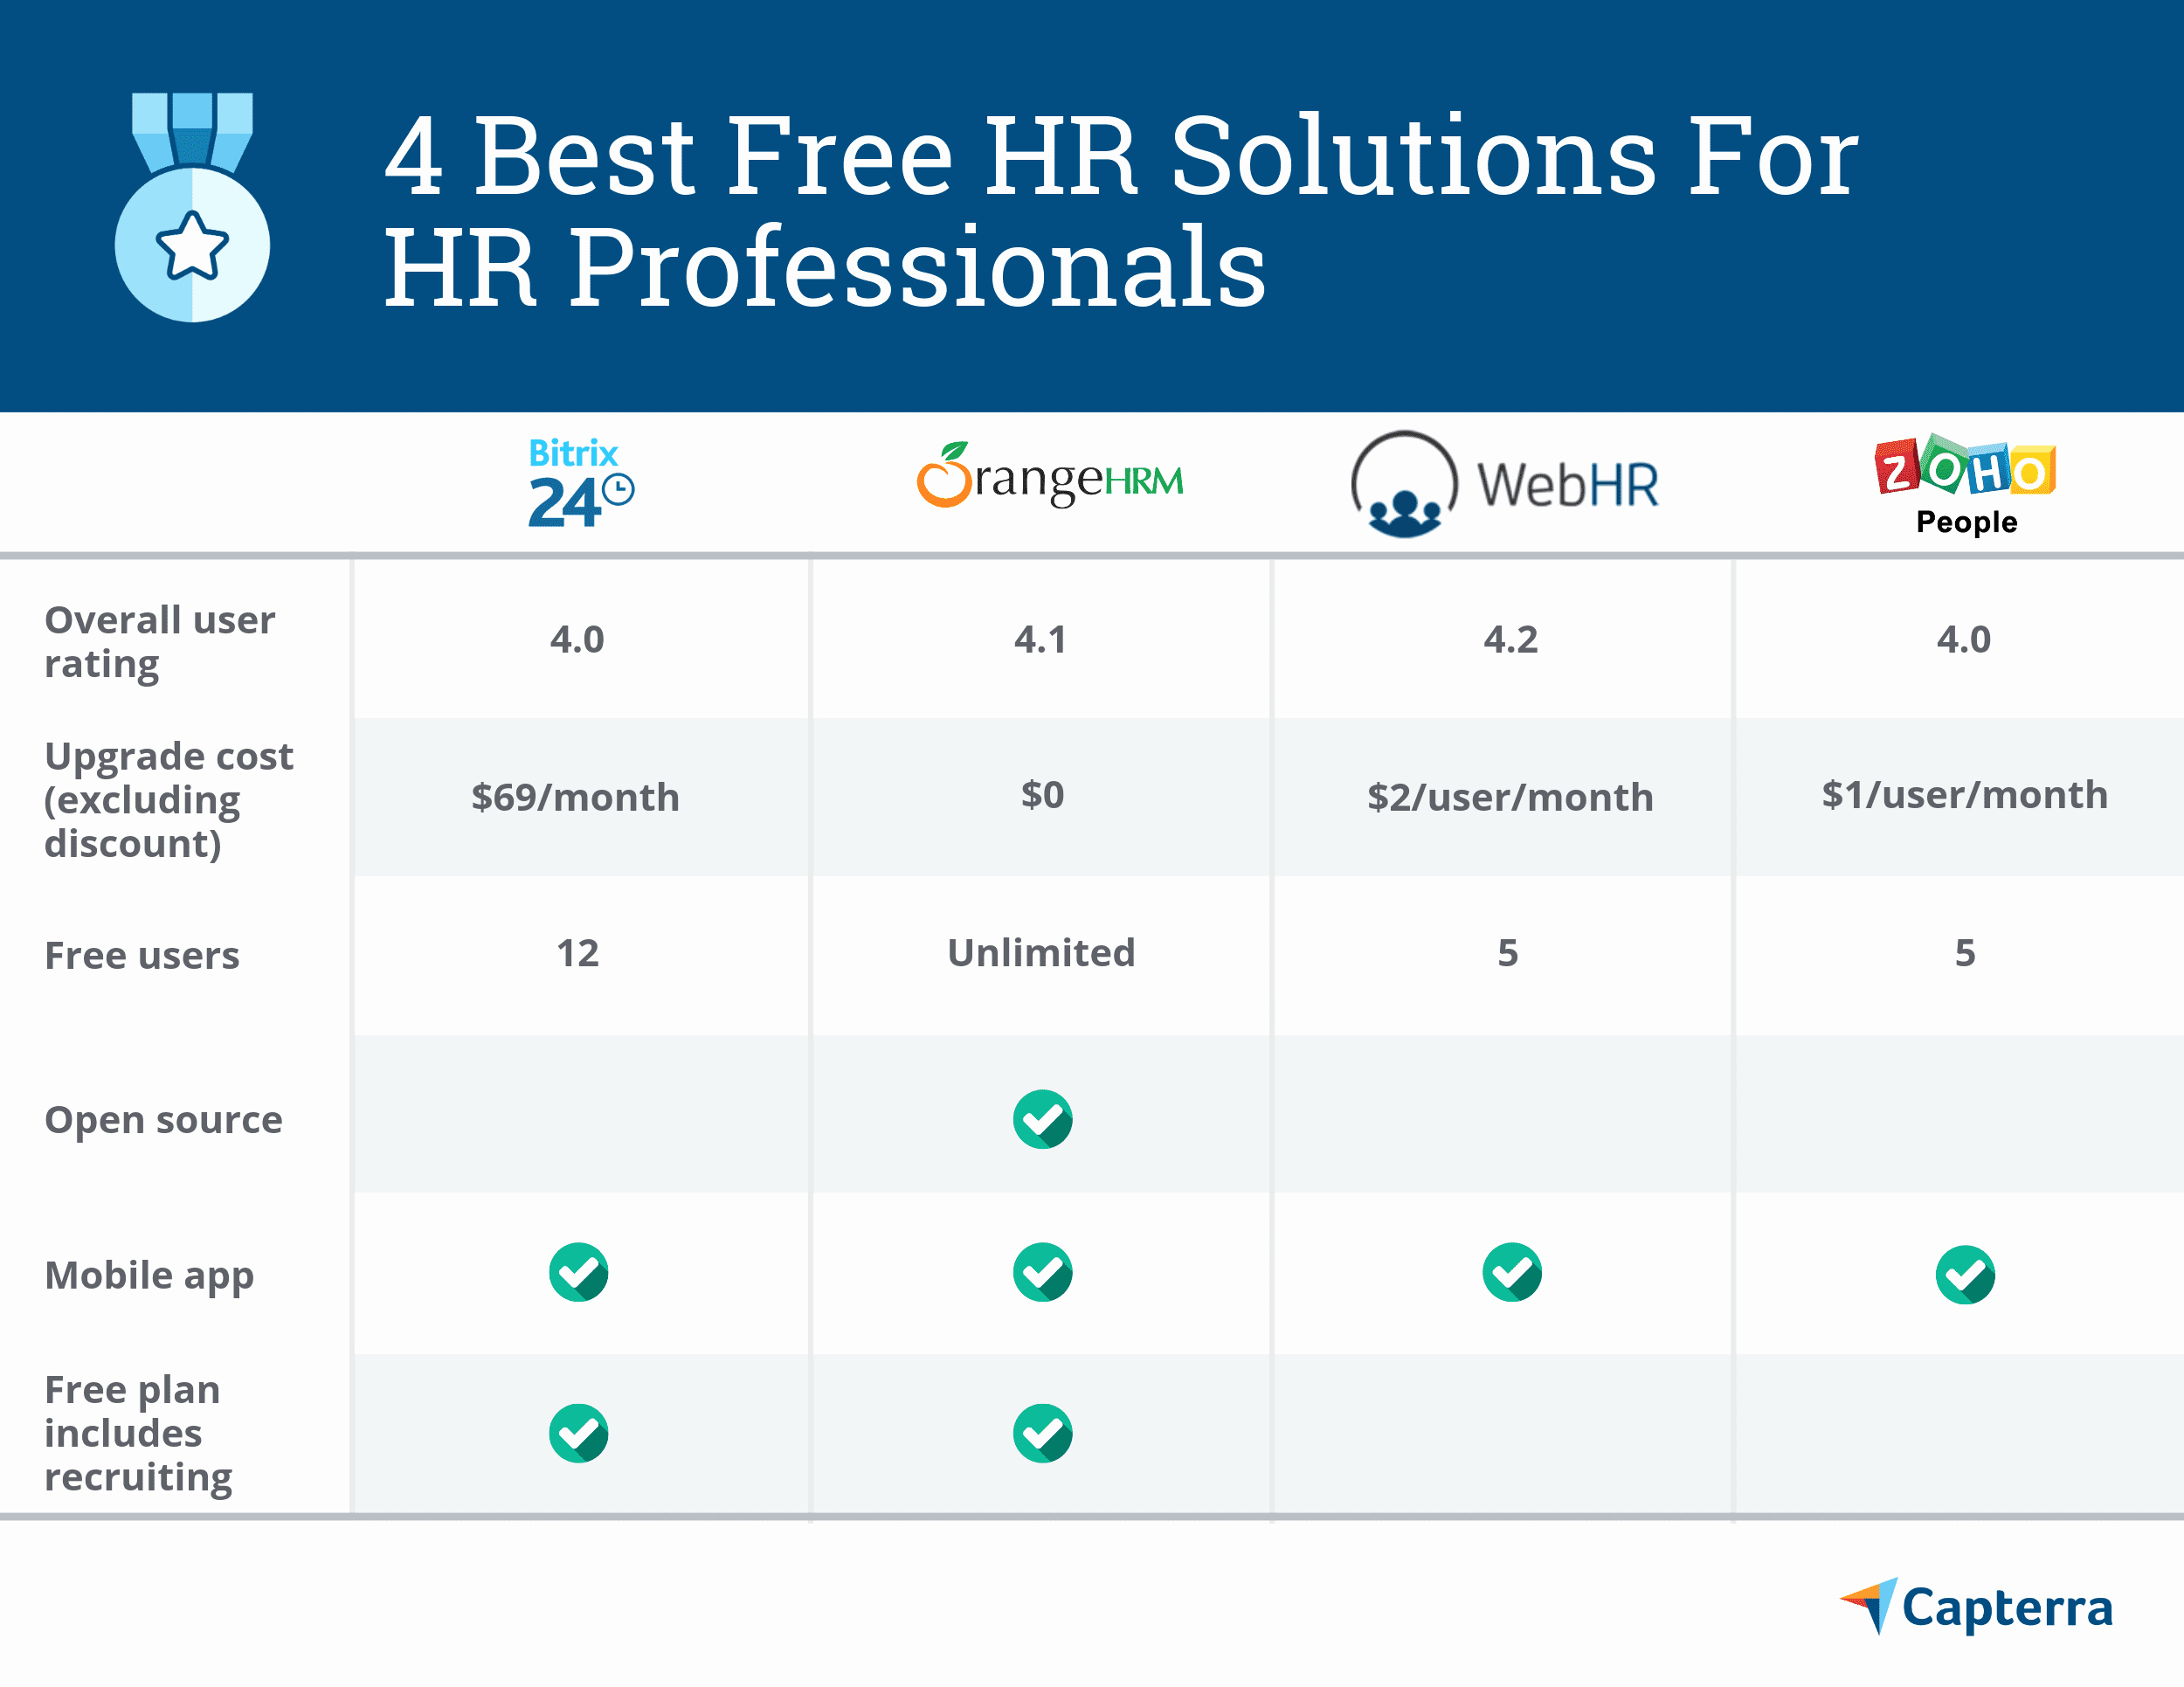 Human Resource Budget Template Best Of 4 Best Free and Open source Hr solutions for Hr Professionals